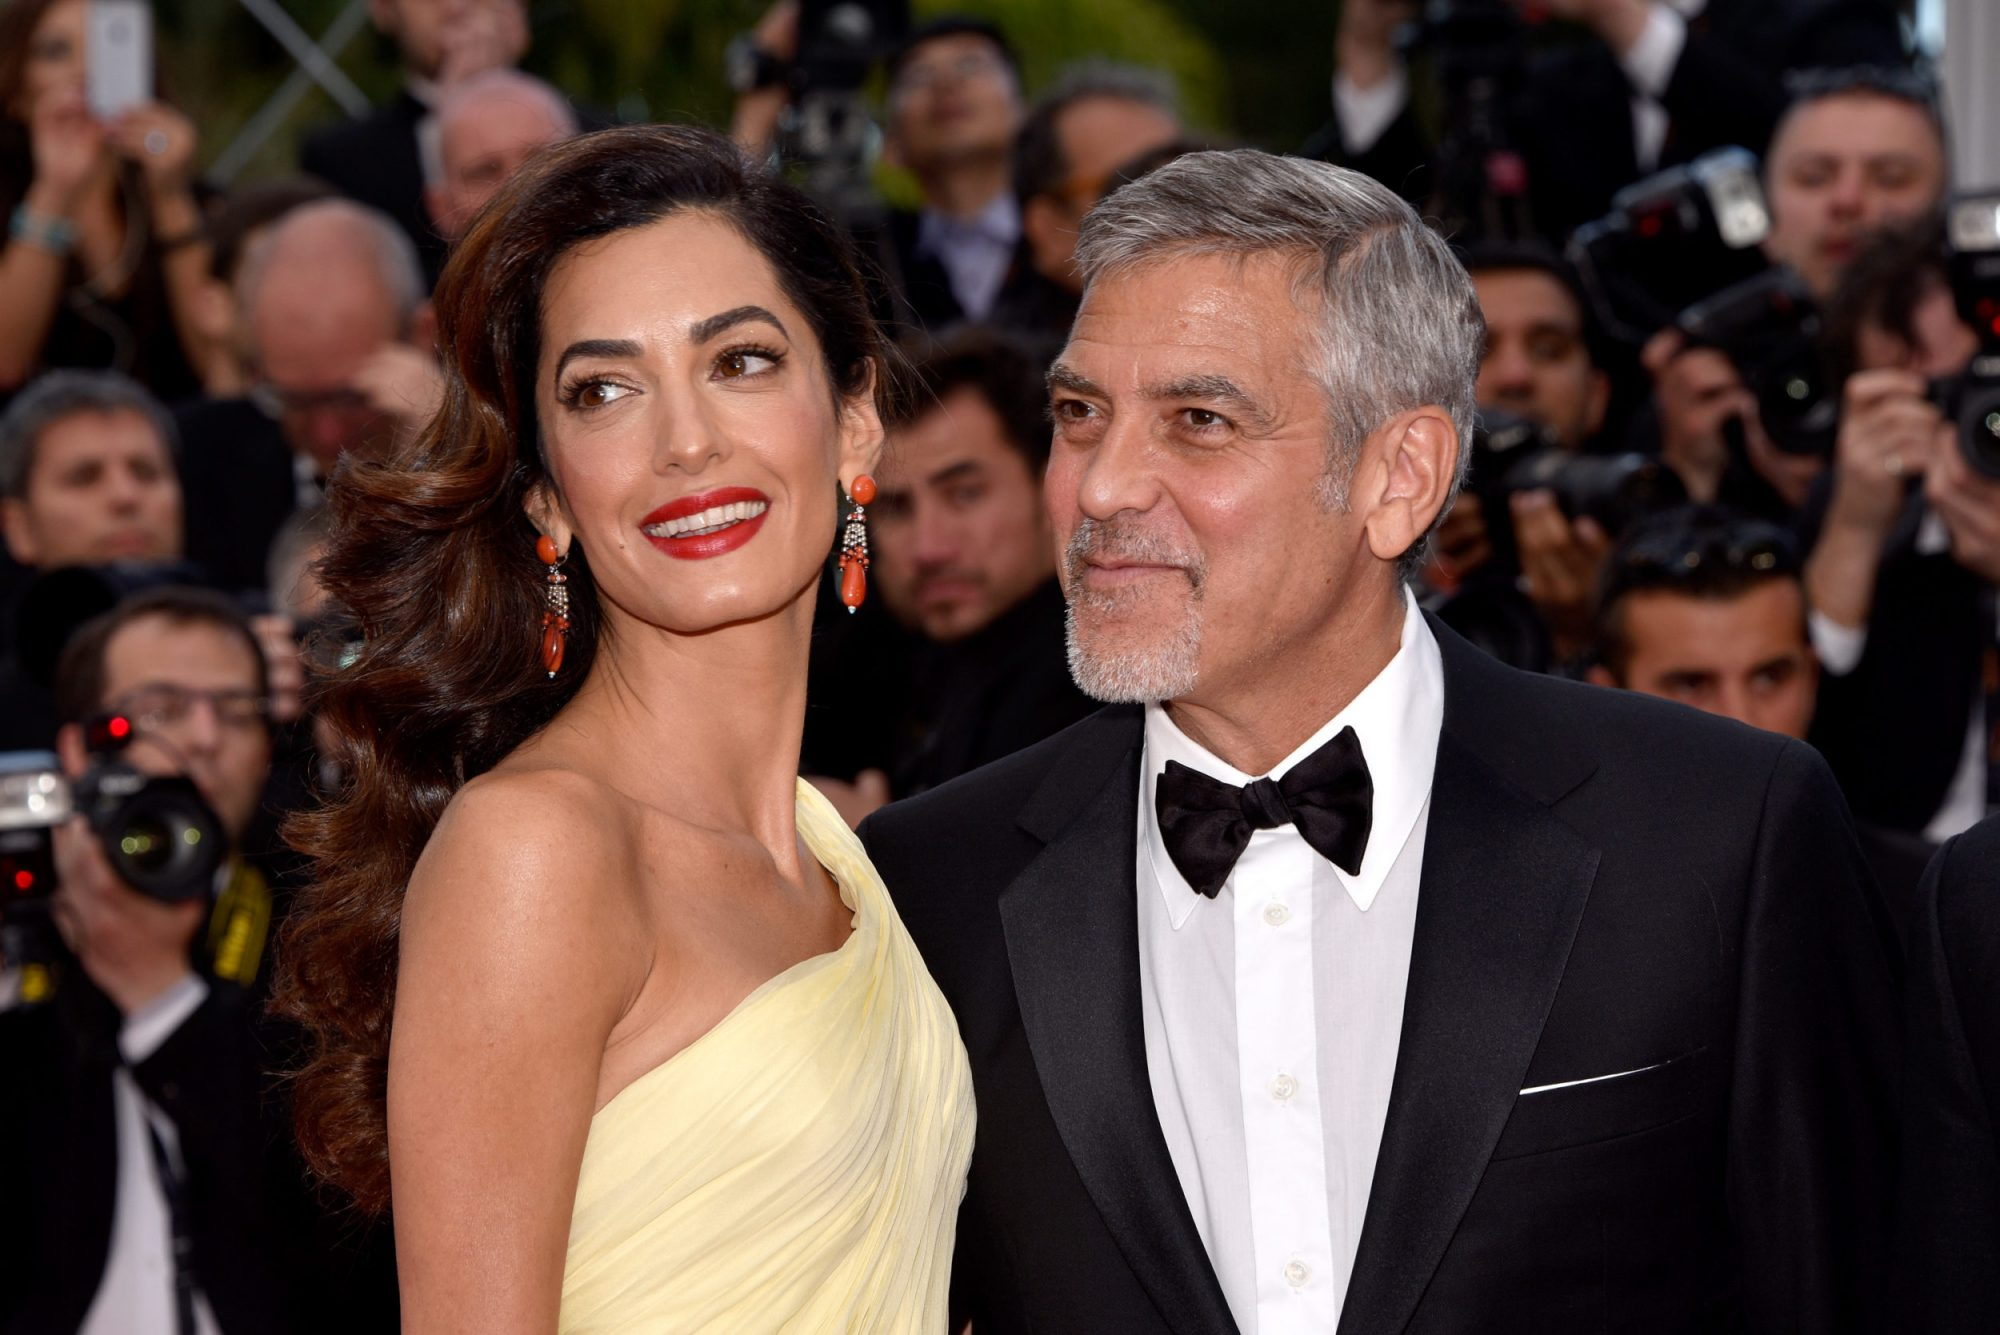 Photo of March For Our Lives Attendees George and Amal Clooney